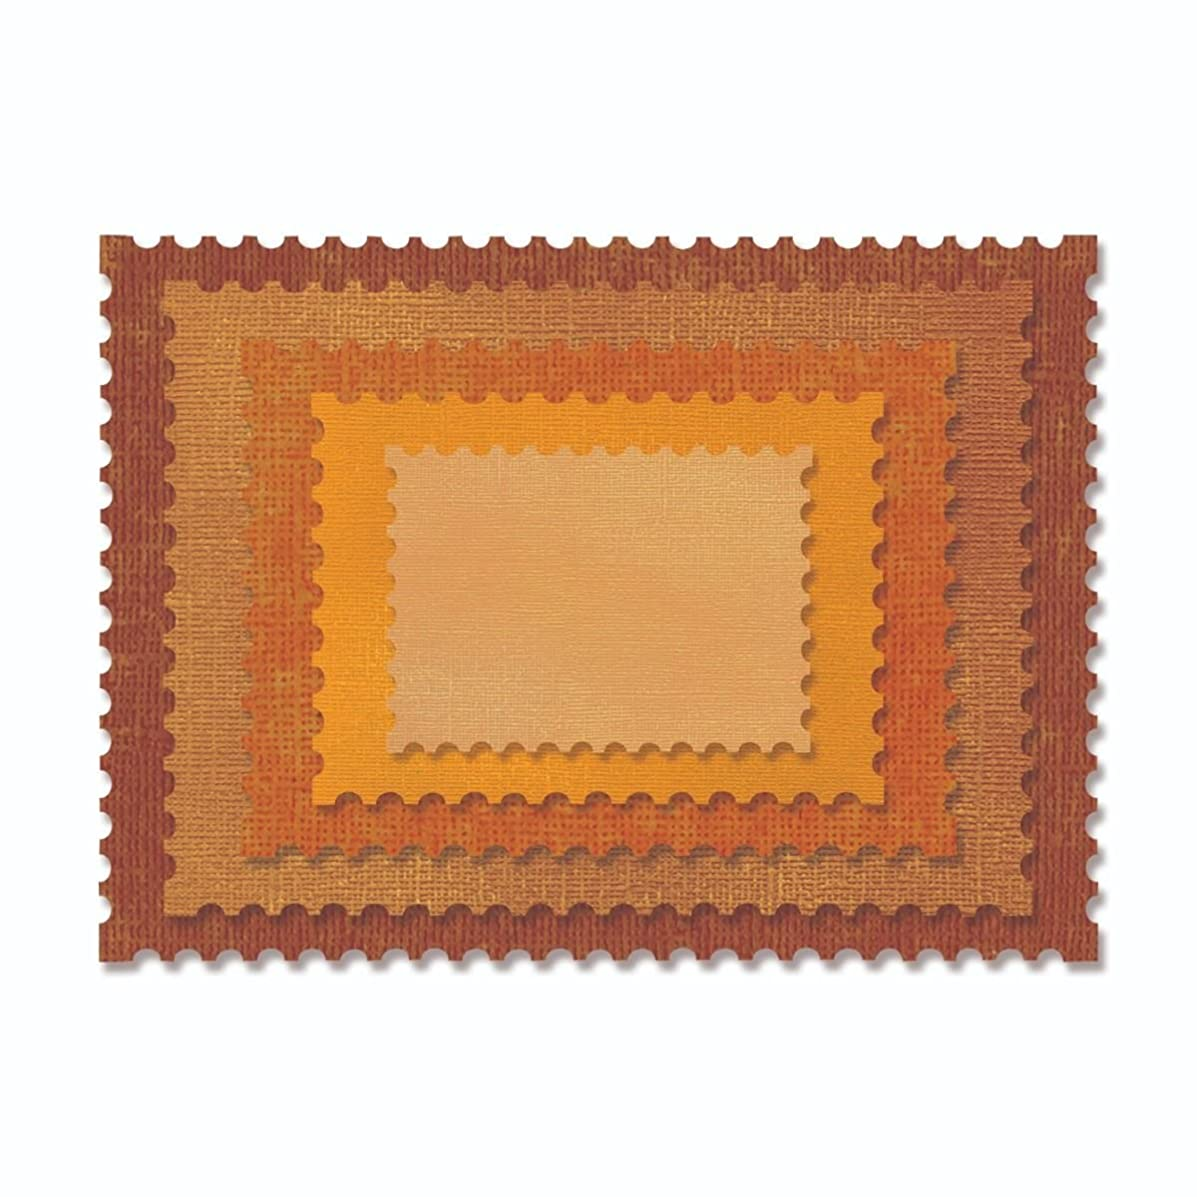 Sizzix 662696 Thinlits Die, Orange